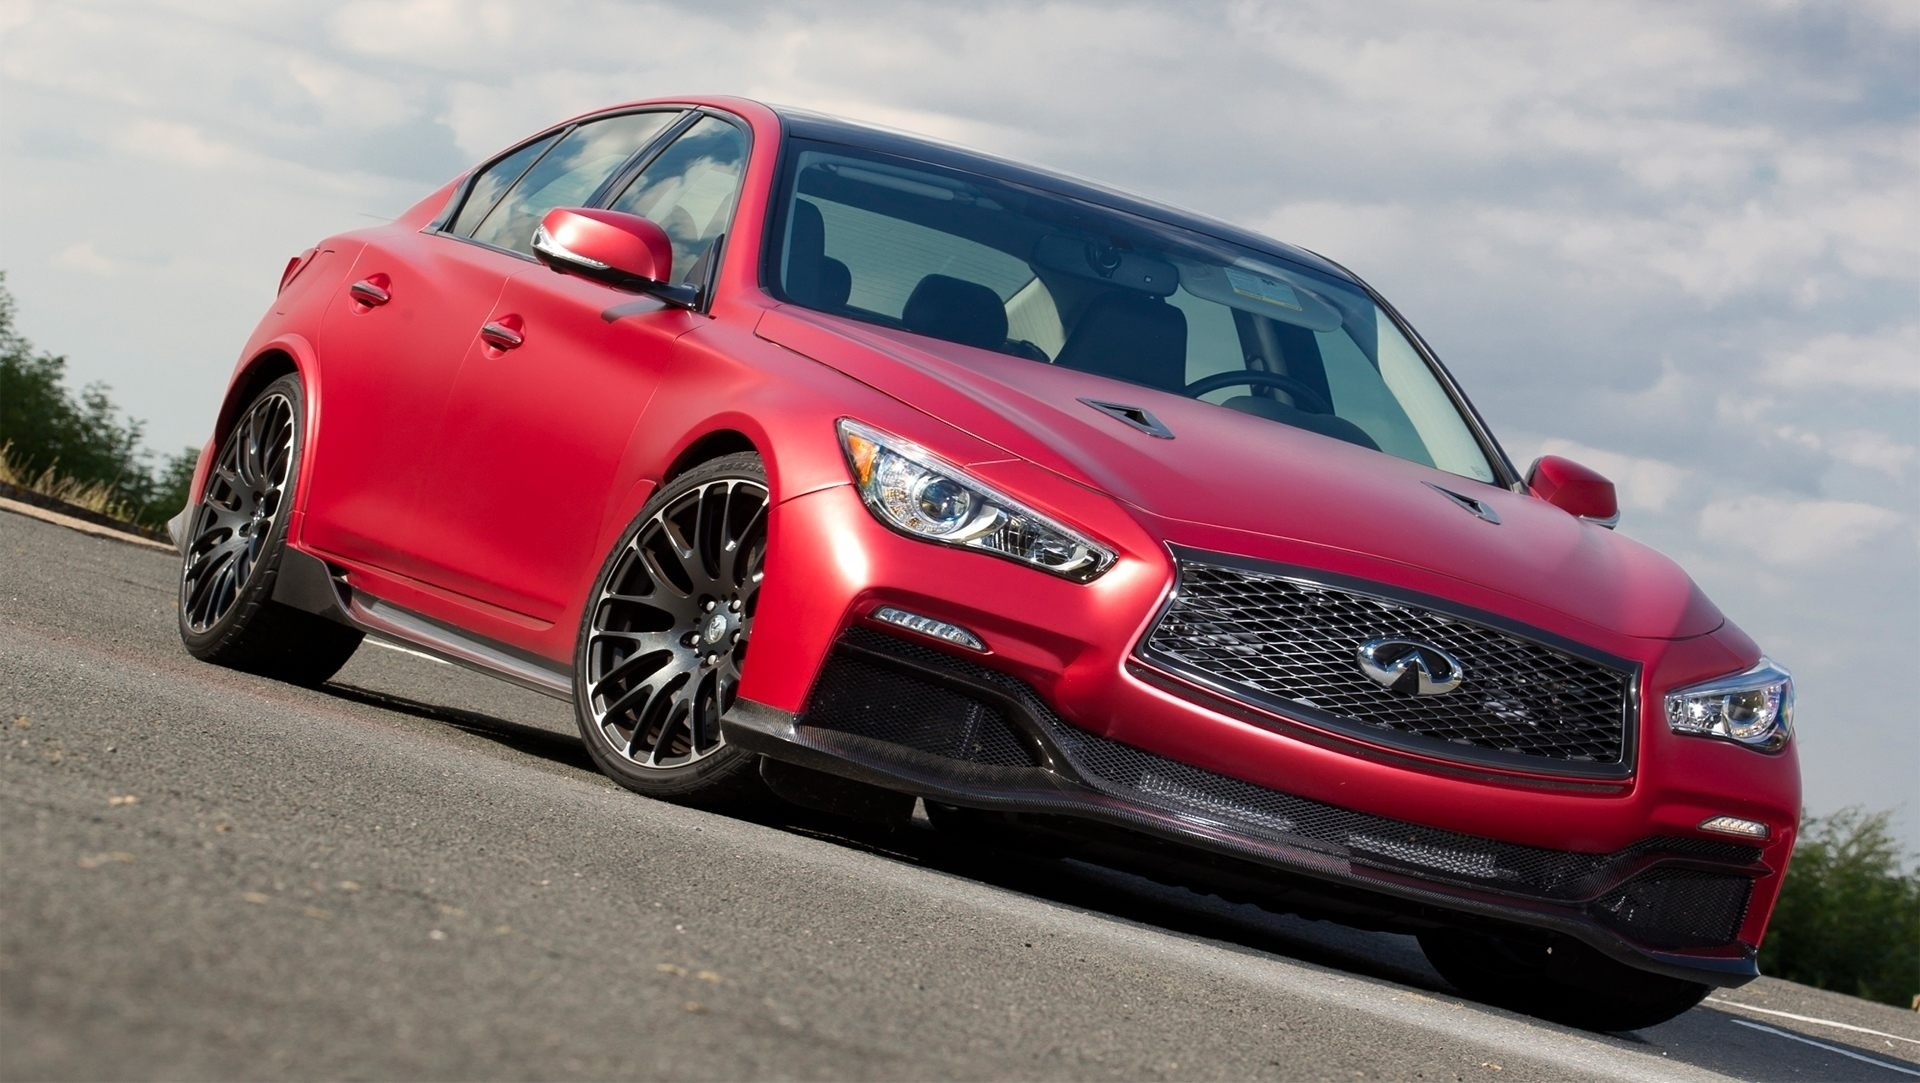 16 New 2020 Infiniti Q50 Coupe Eau Rouge Pricing